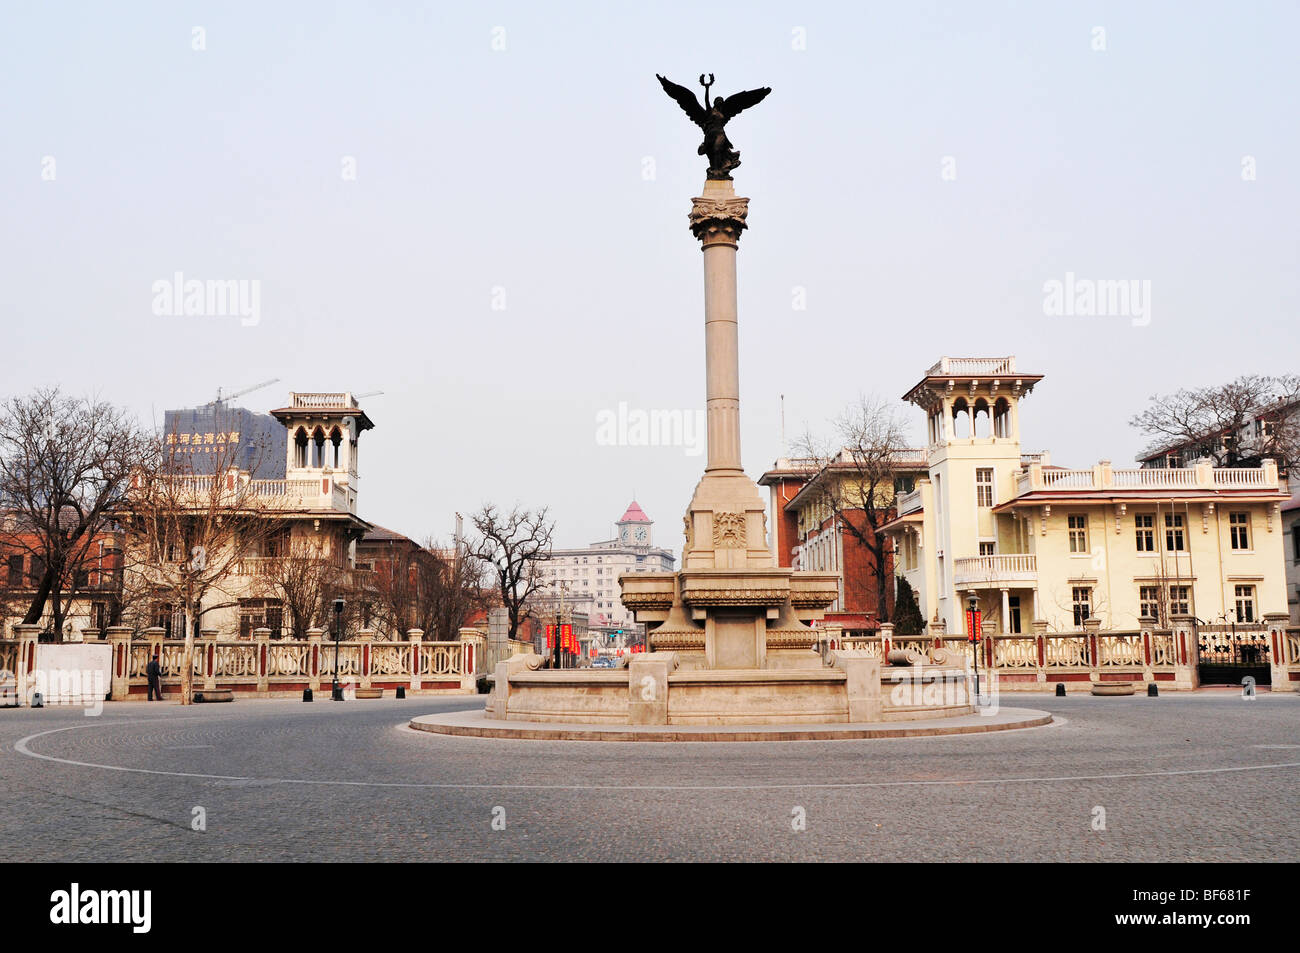 Sculpture in Marco Polo Square, Italian Travel Street, Tianjing, China - Stock Image